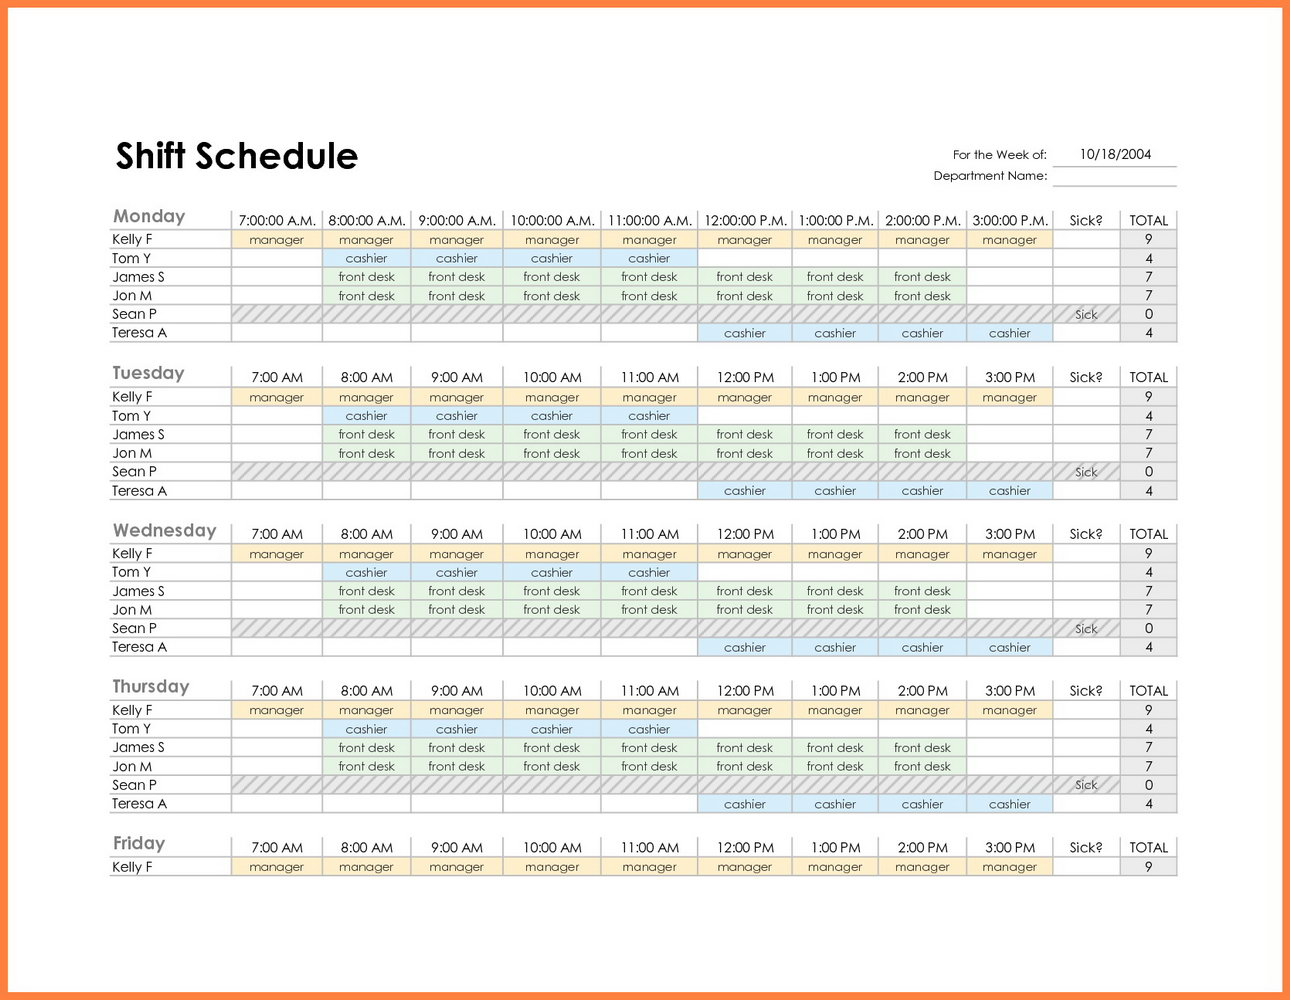 Staffing Schedule Employee Schedule Template